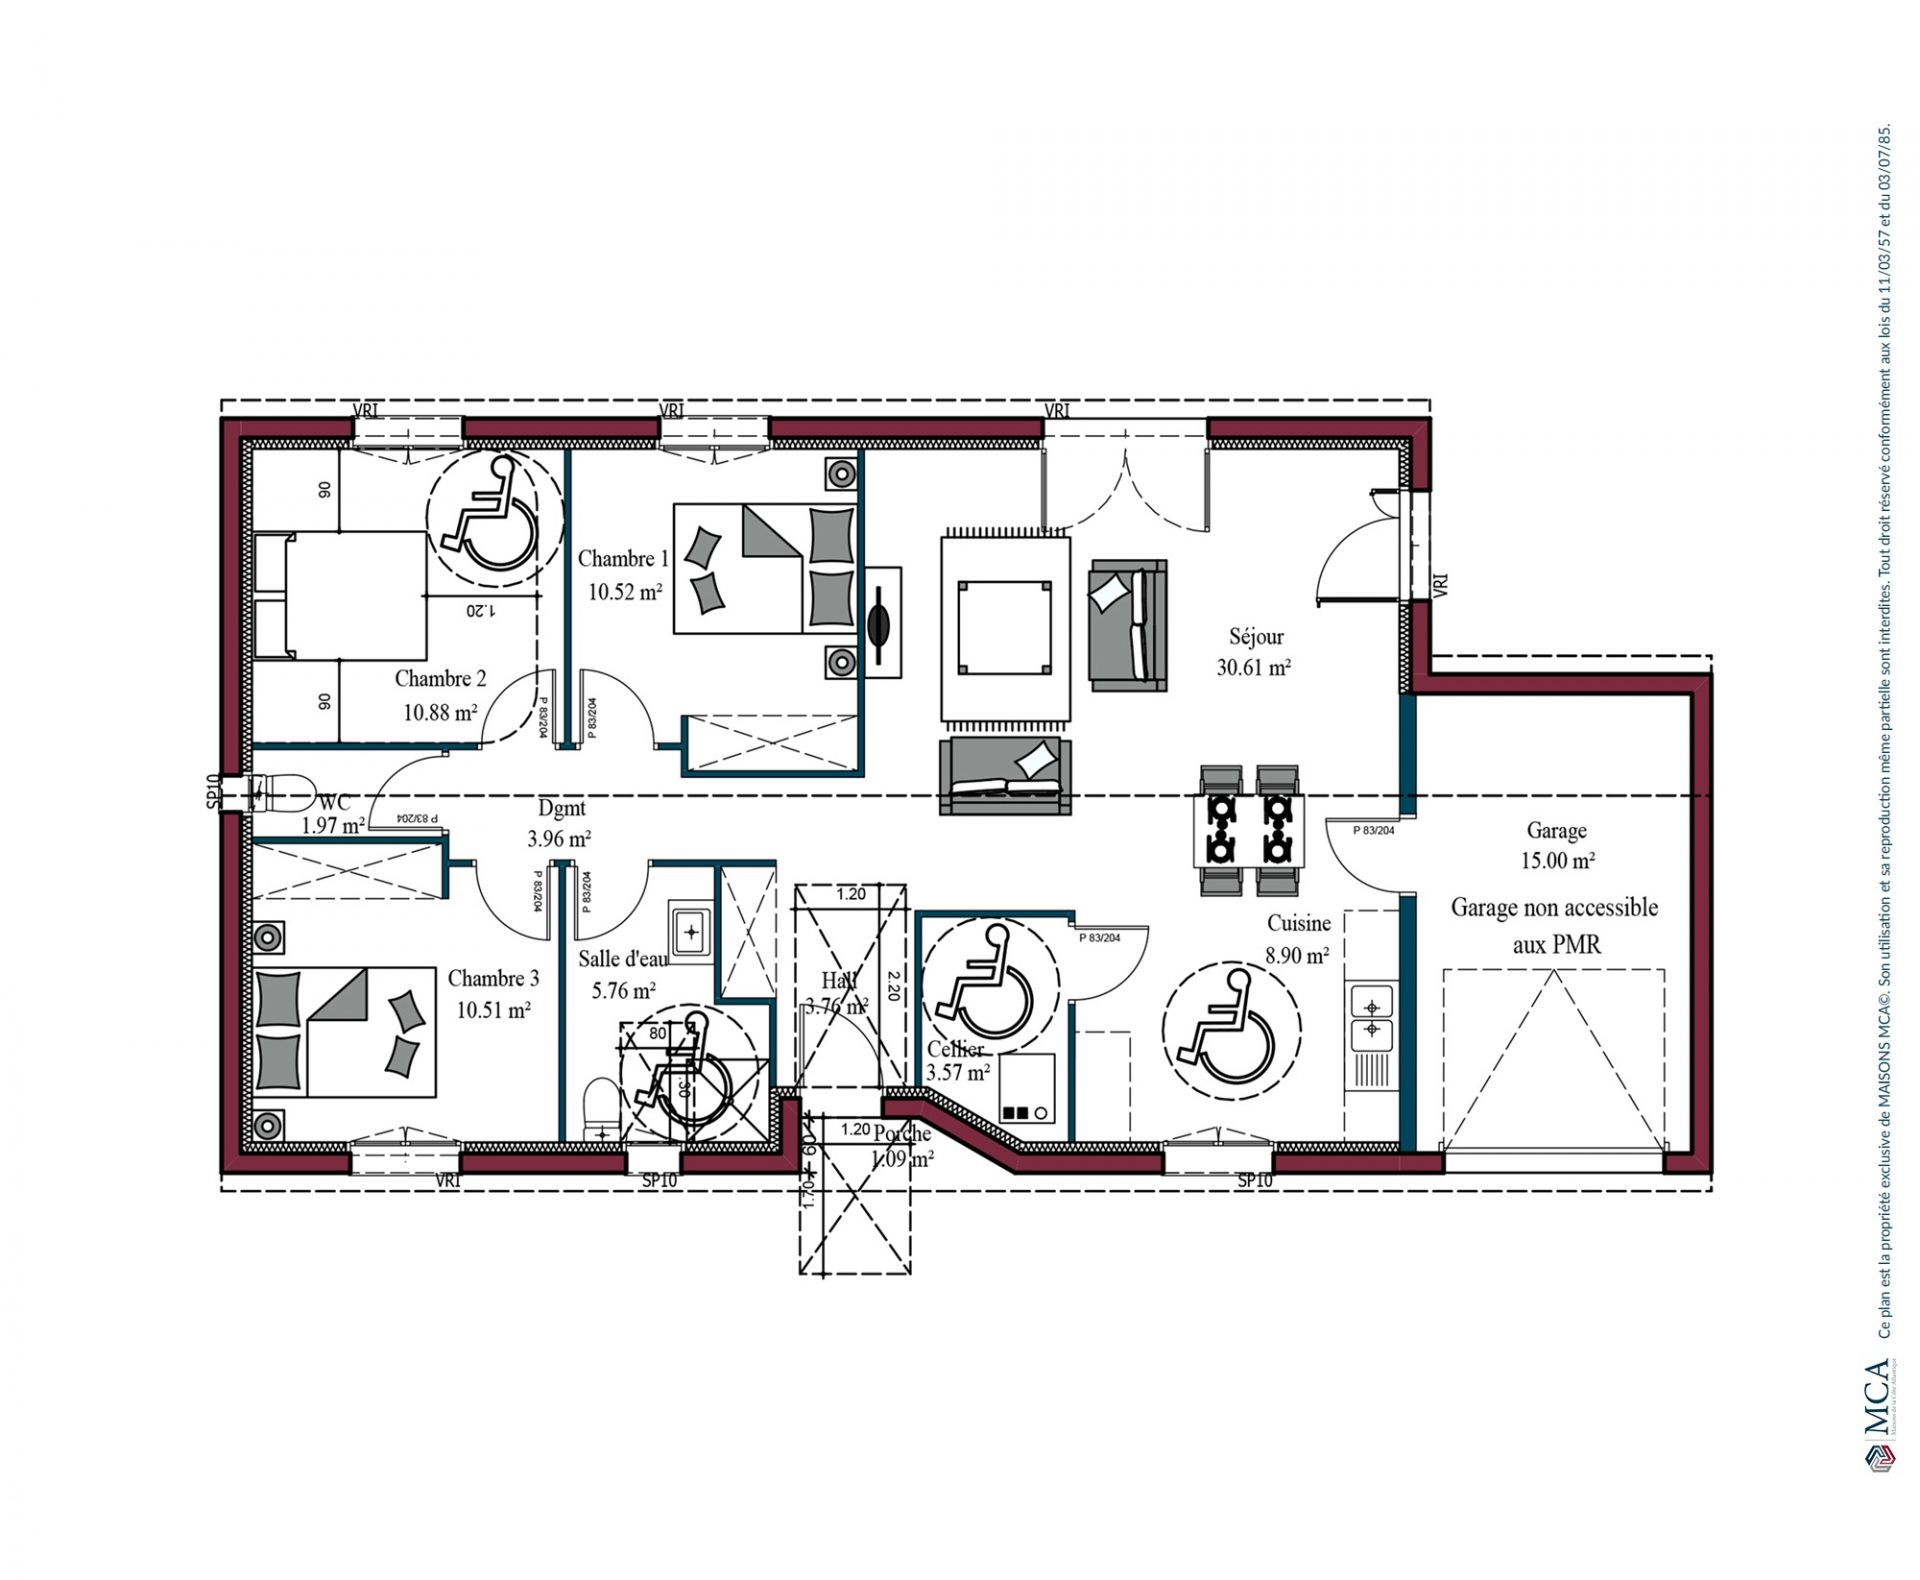 Plan Optima investisseur | 90 m²